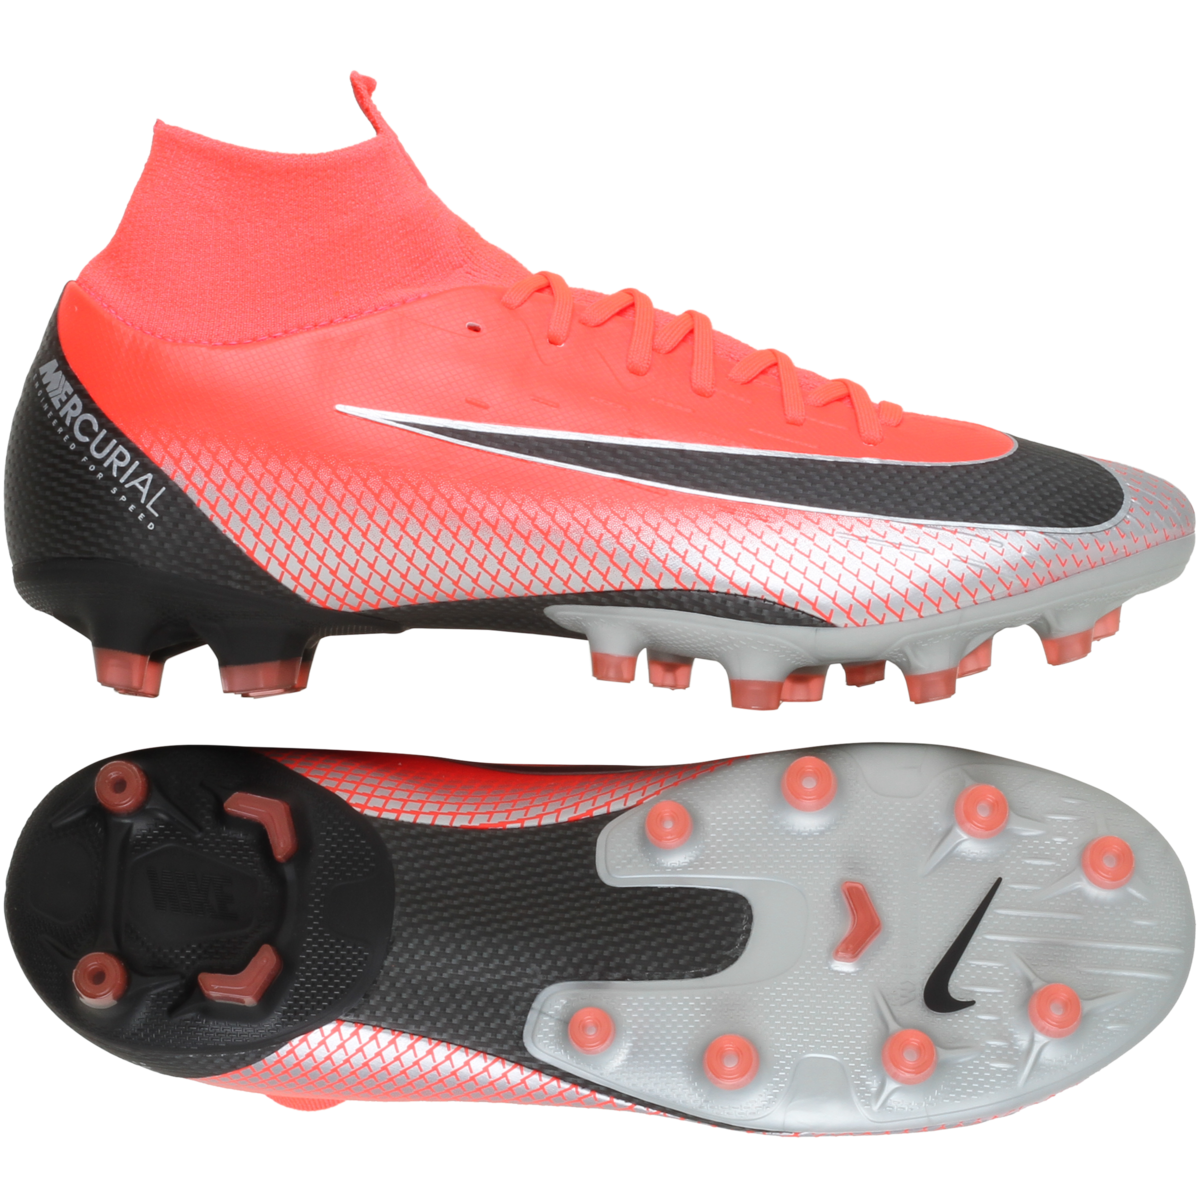 Nike – Mercurial Superfly 6 Pro CR7 AG-Pro 'Chapter 7: Built On Dreams' – Rød